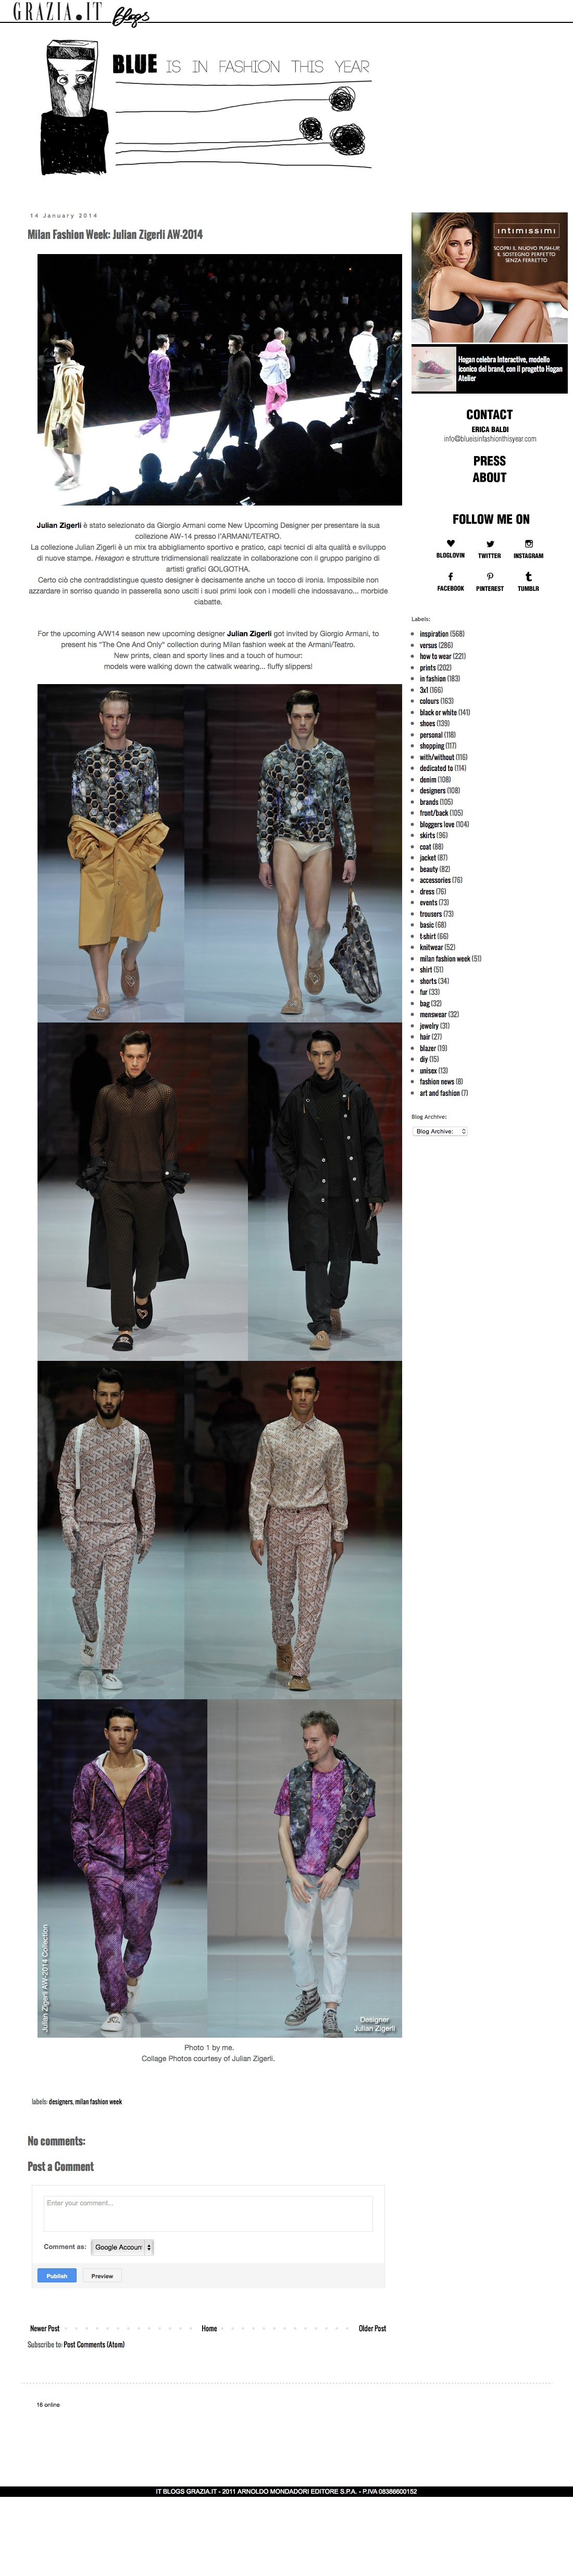 blueisinfashionthisyear_milan-fashion-week-julian-zigerli-aw.html (20150519)